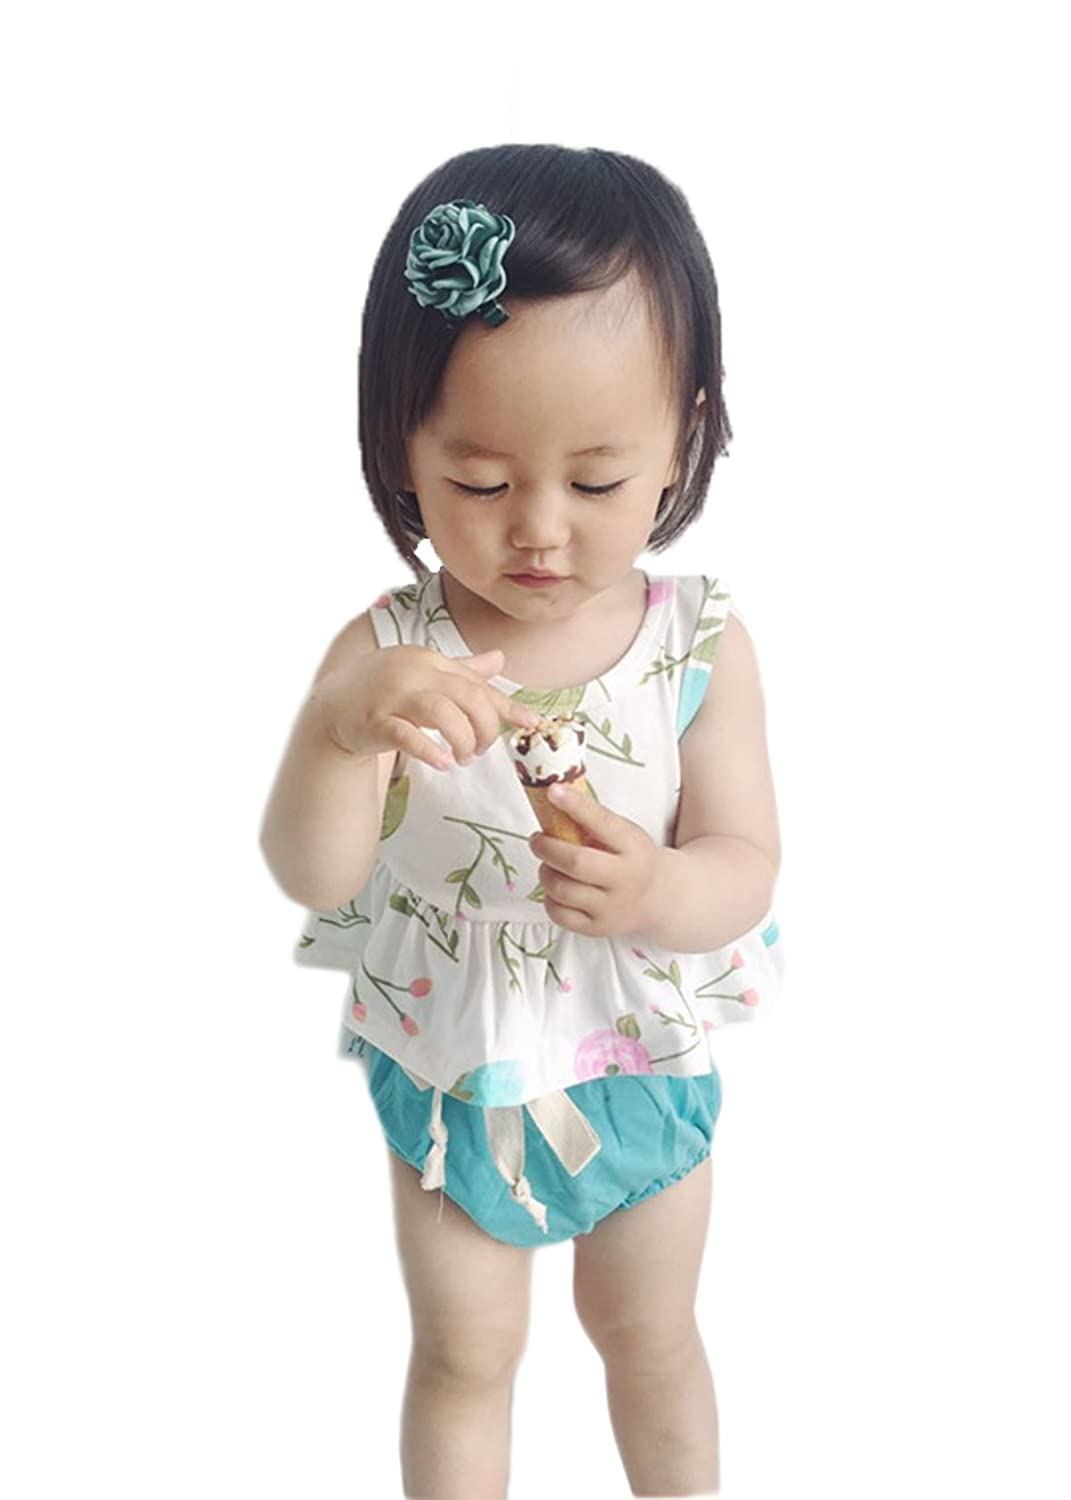 c7d5ad9ee Amazon.com  Baby Girls Summer Swimsuit Two-Pieces Sleeveless Tank ...